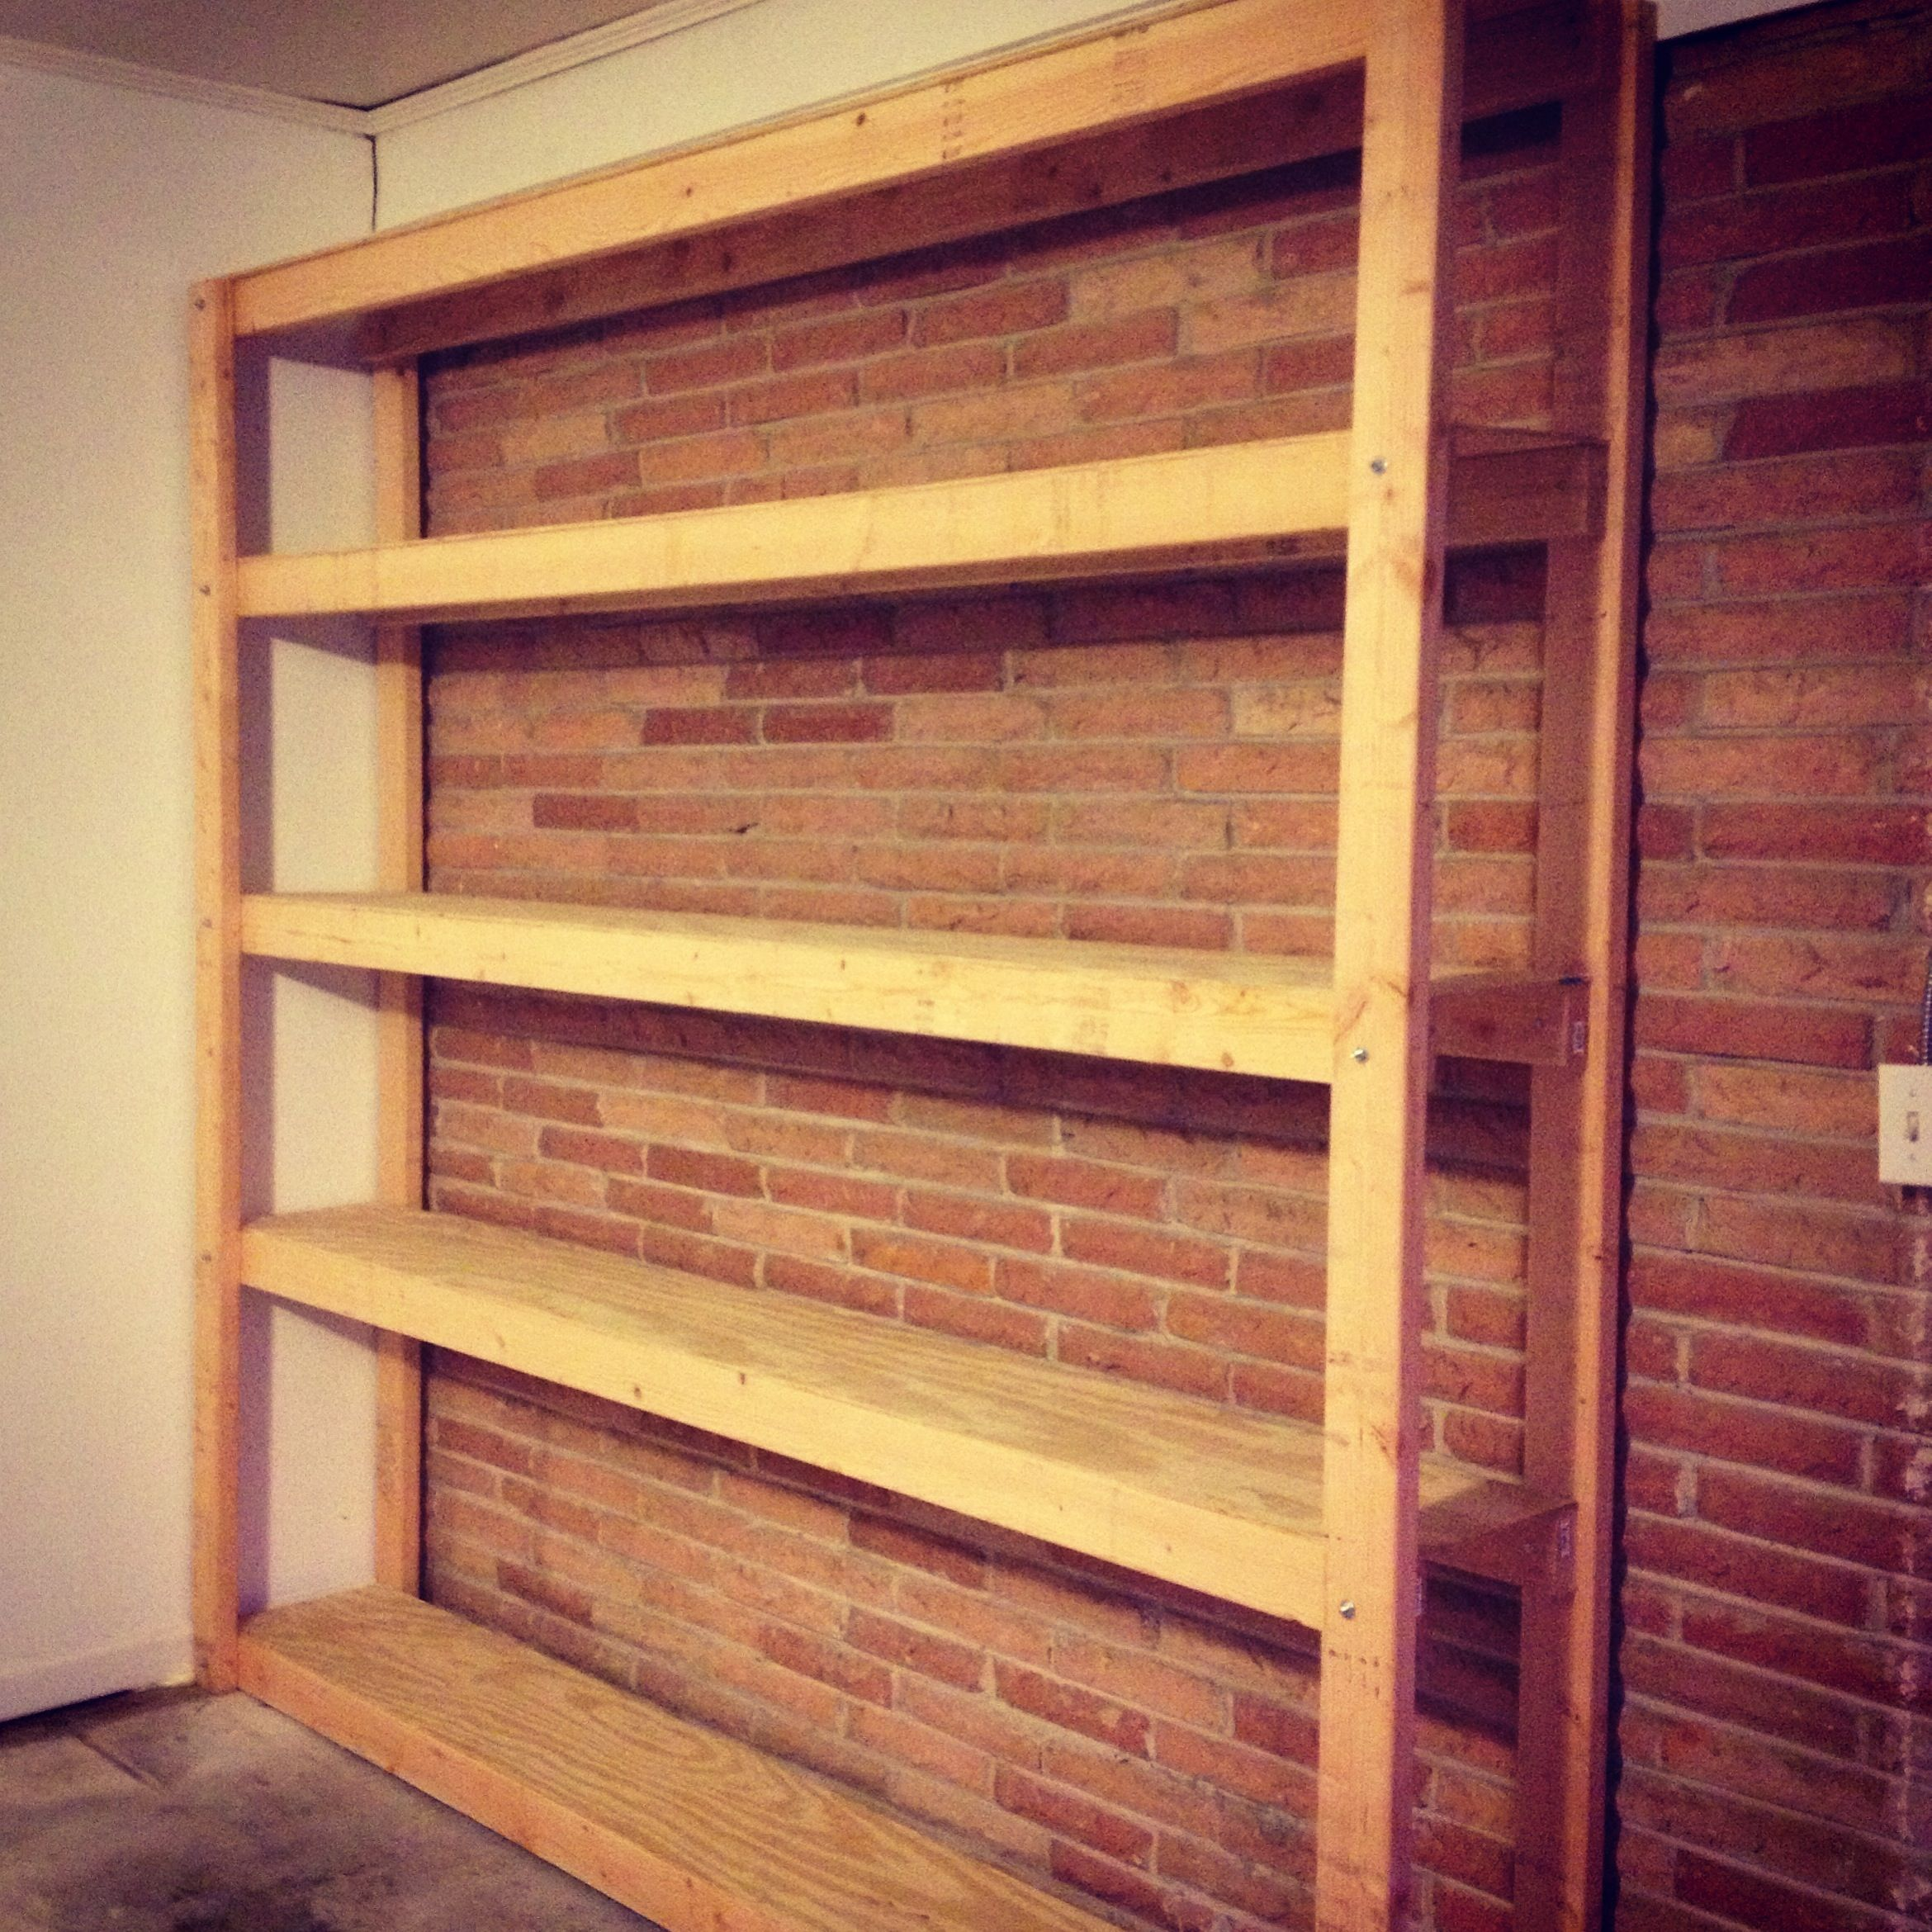 Garage Storage Ideas Find Unused Space Garage Storage Shelves Overhead Garage Storage Diy Garage Storage